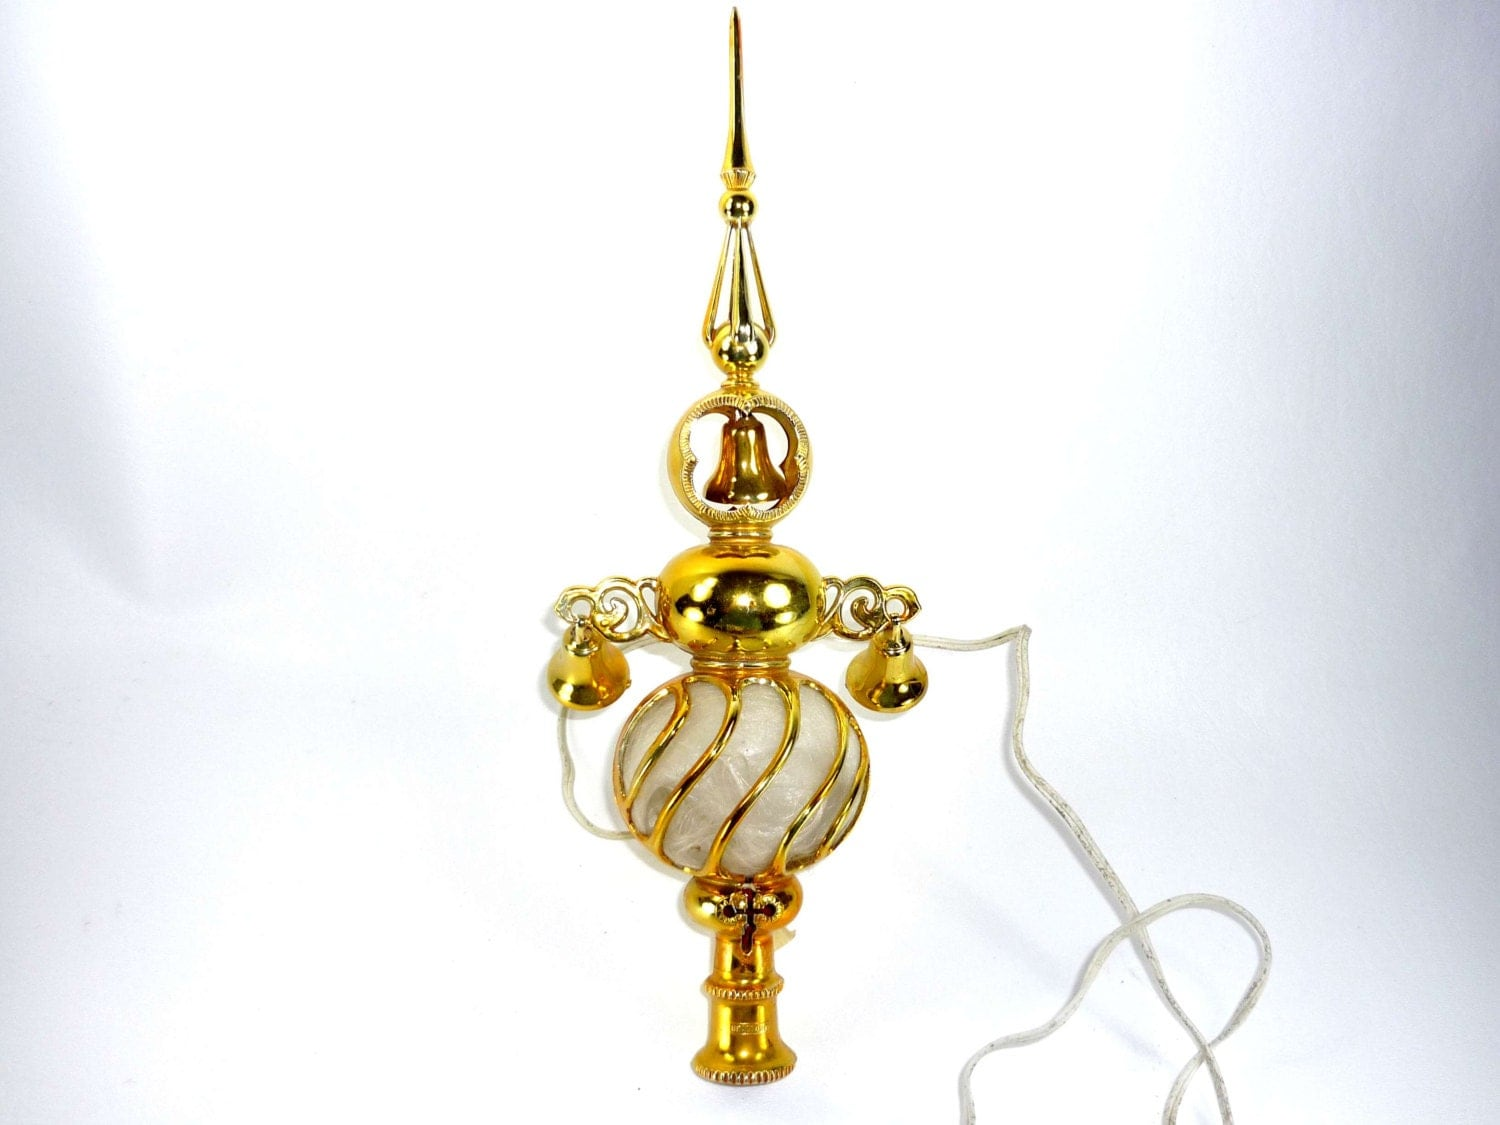 Vintage Lighted Christmas Tree Topper Gold Carillon Spire